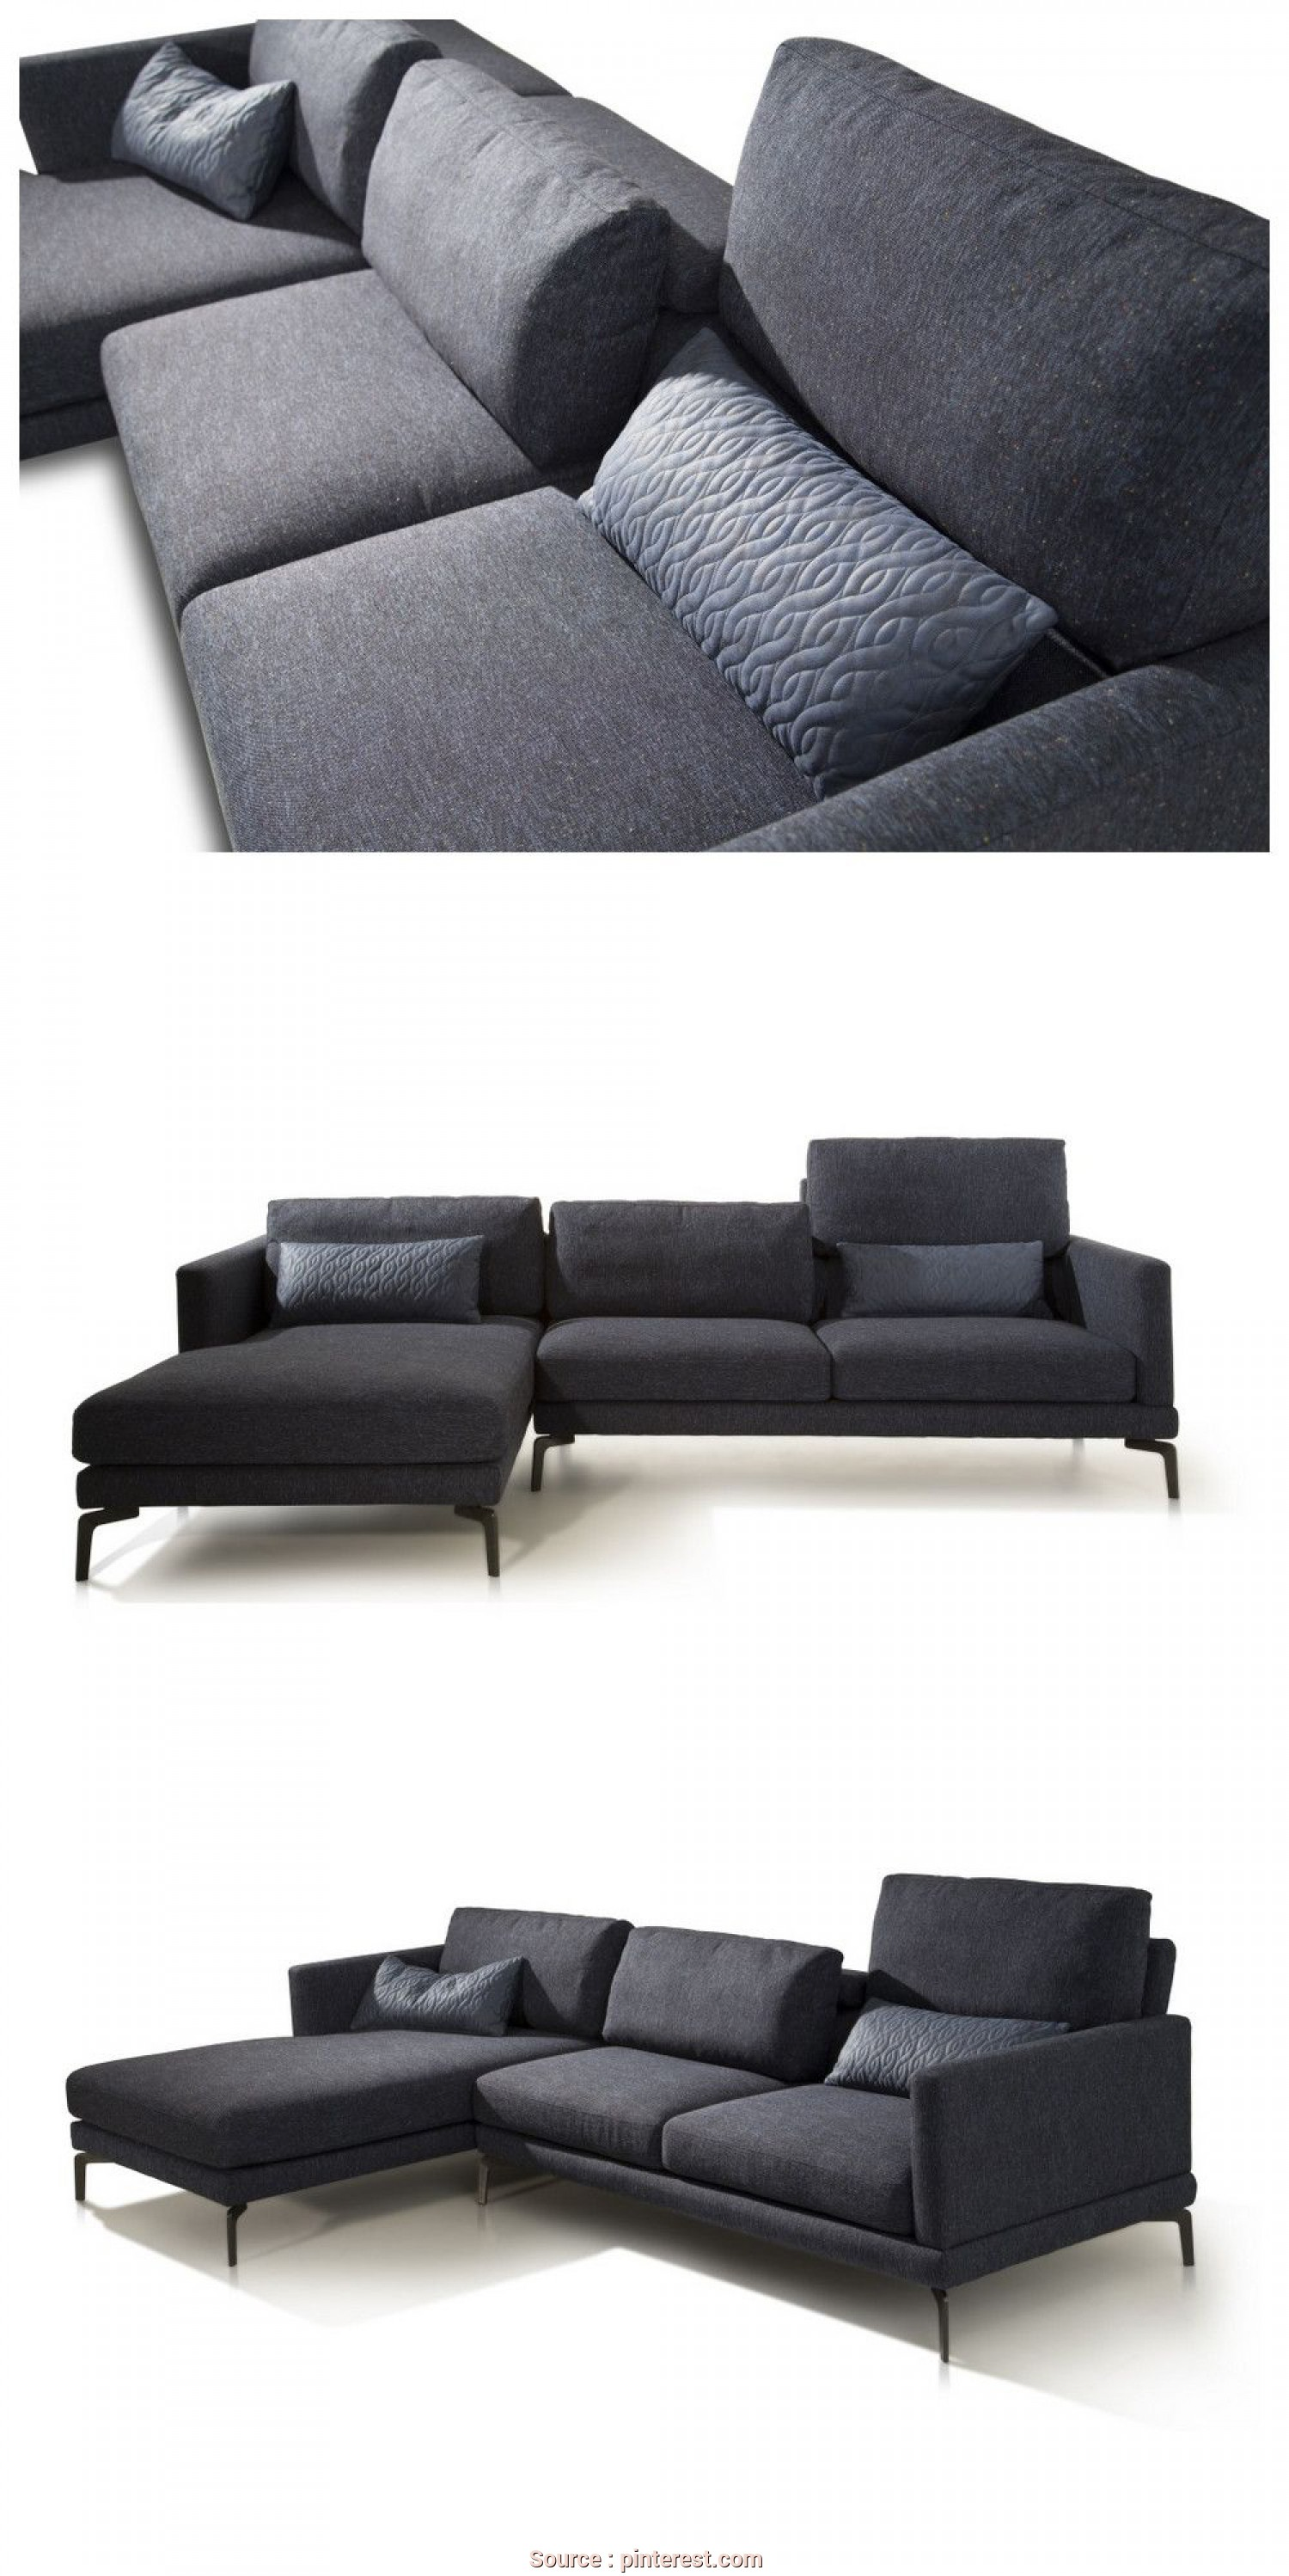 Loveable 5 Futon Ikea Subito